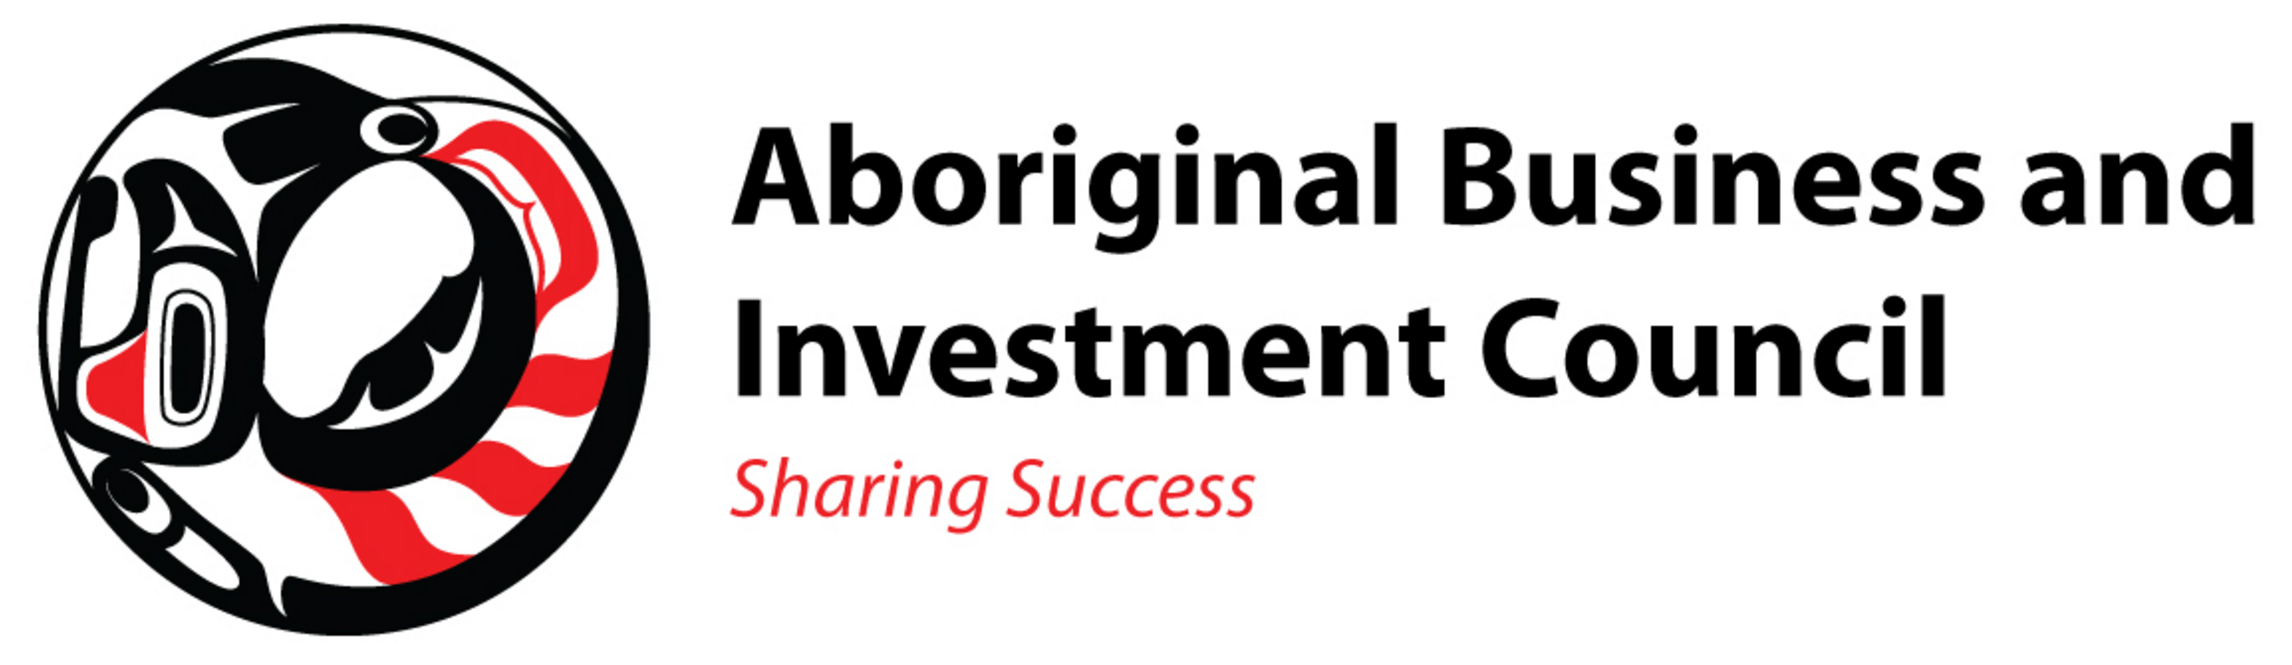 Aboriginal Business and Investment Council Logo